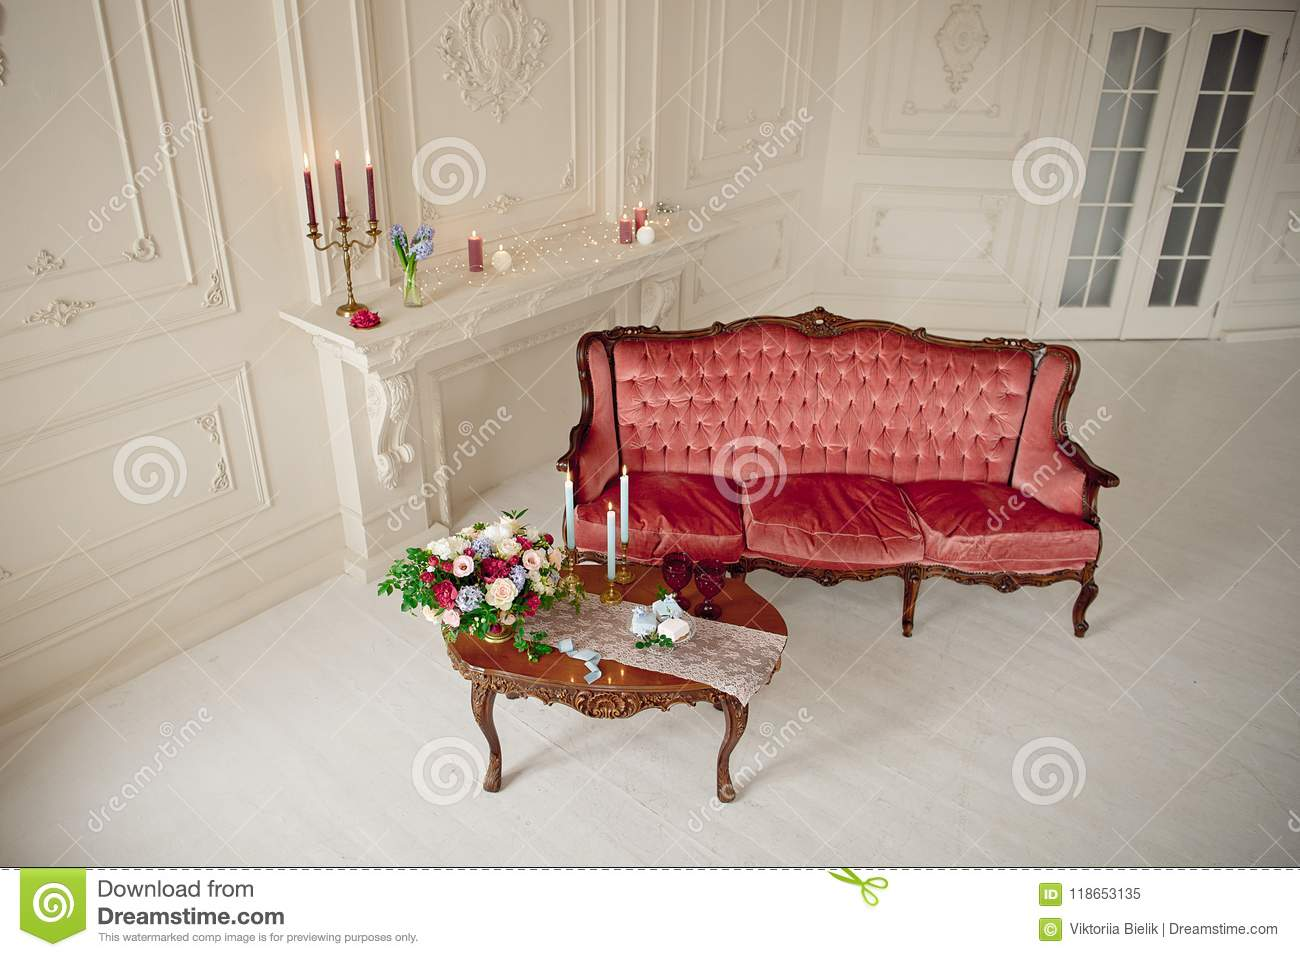 Fine Baroque Style Interior With Red Luxury Sofa And Table Stock Machost Co Dining Chair Design Ideas Machostcouk